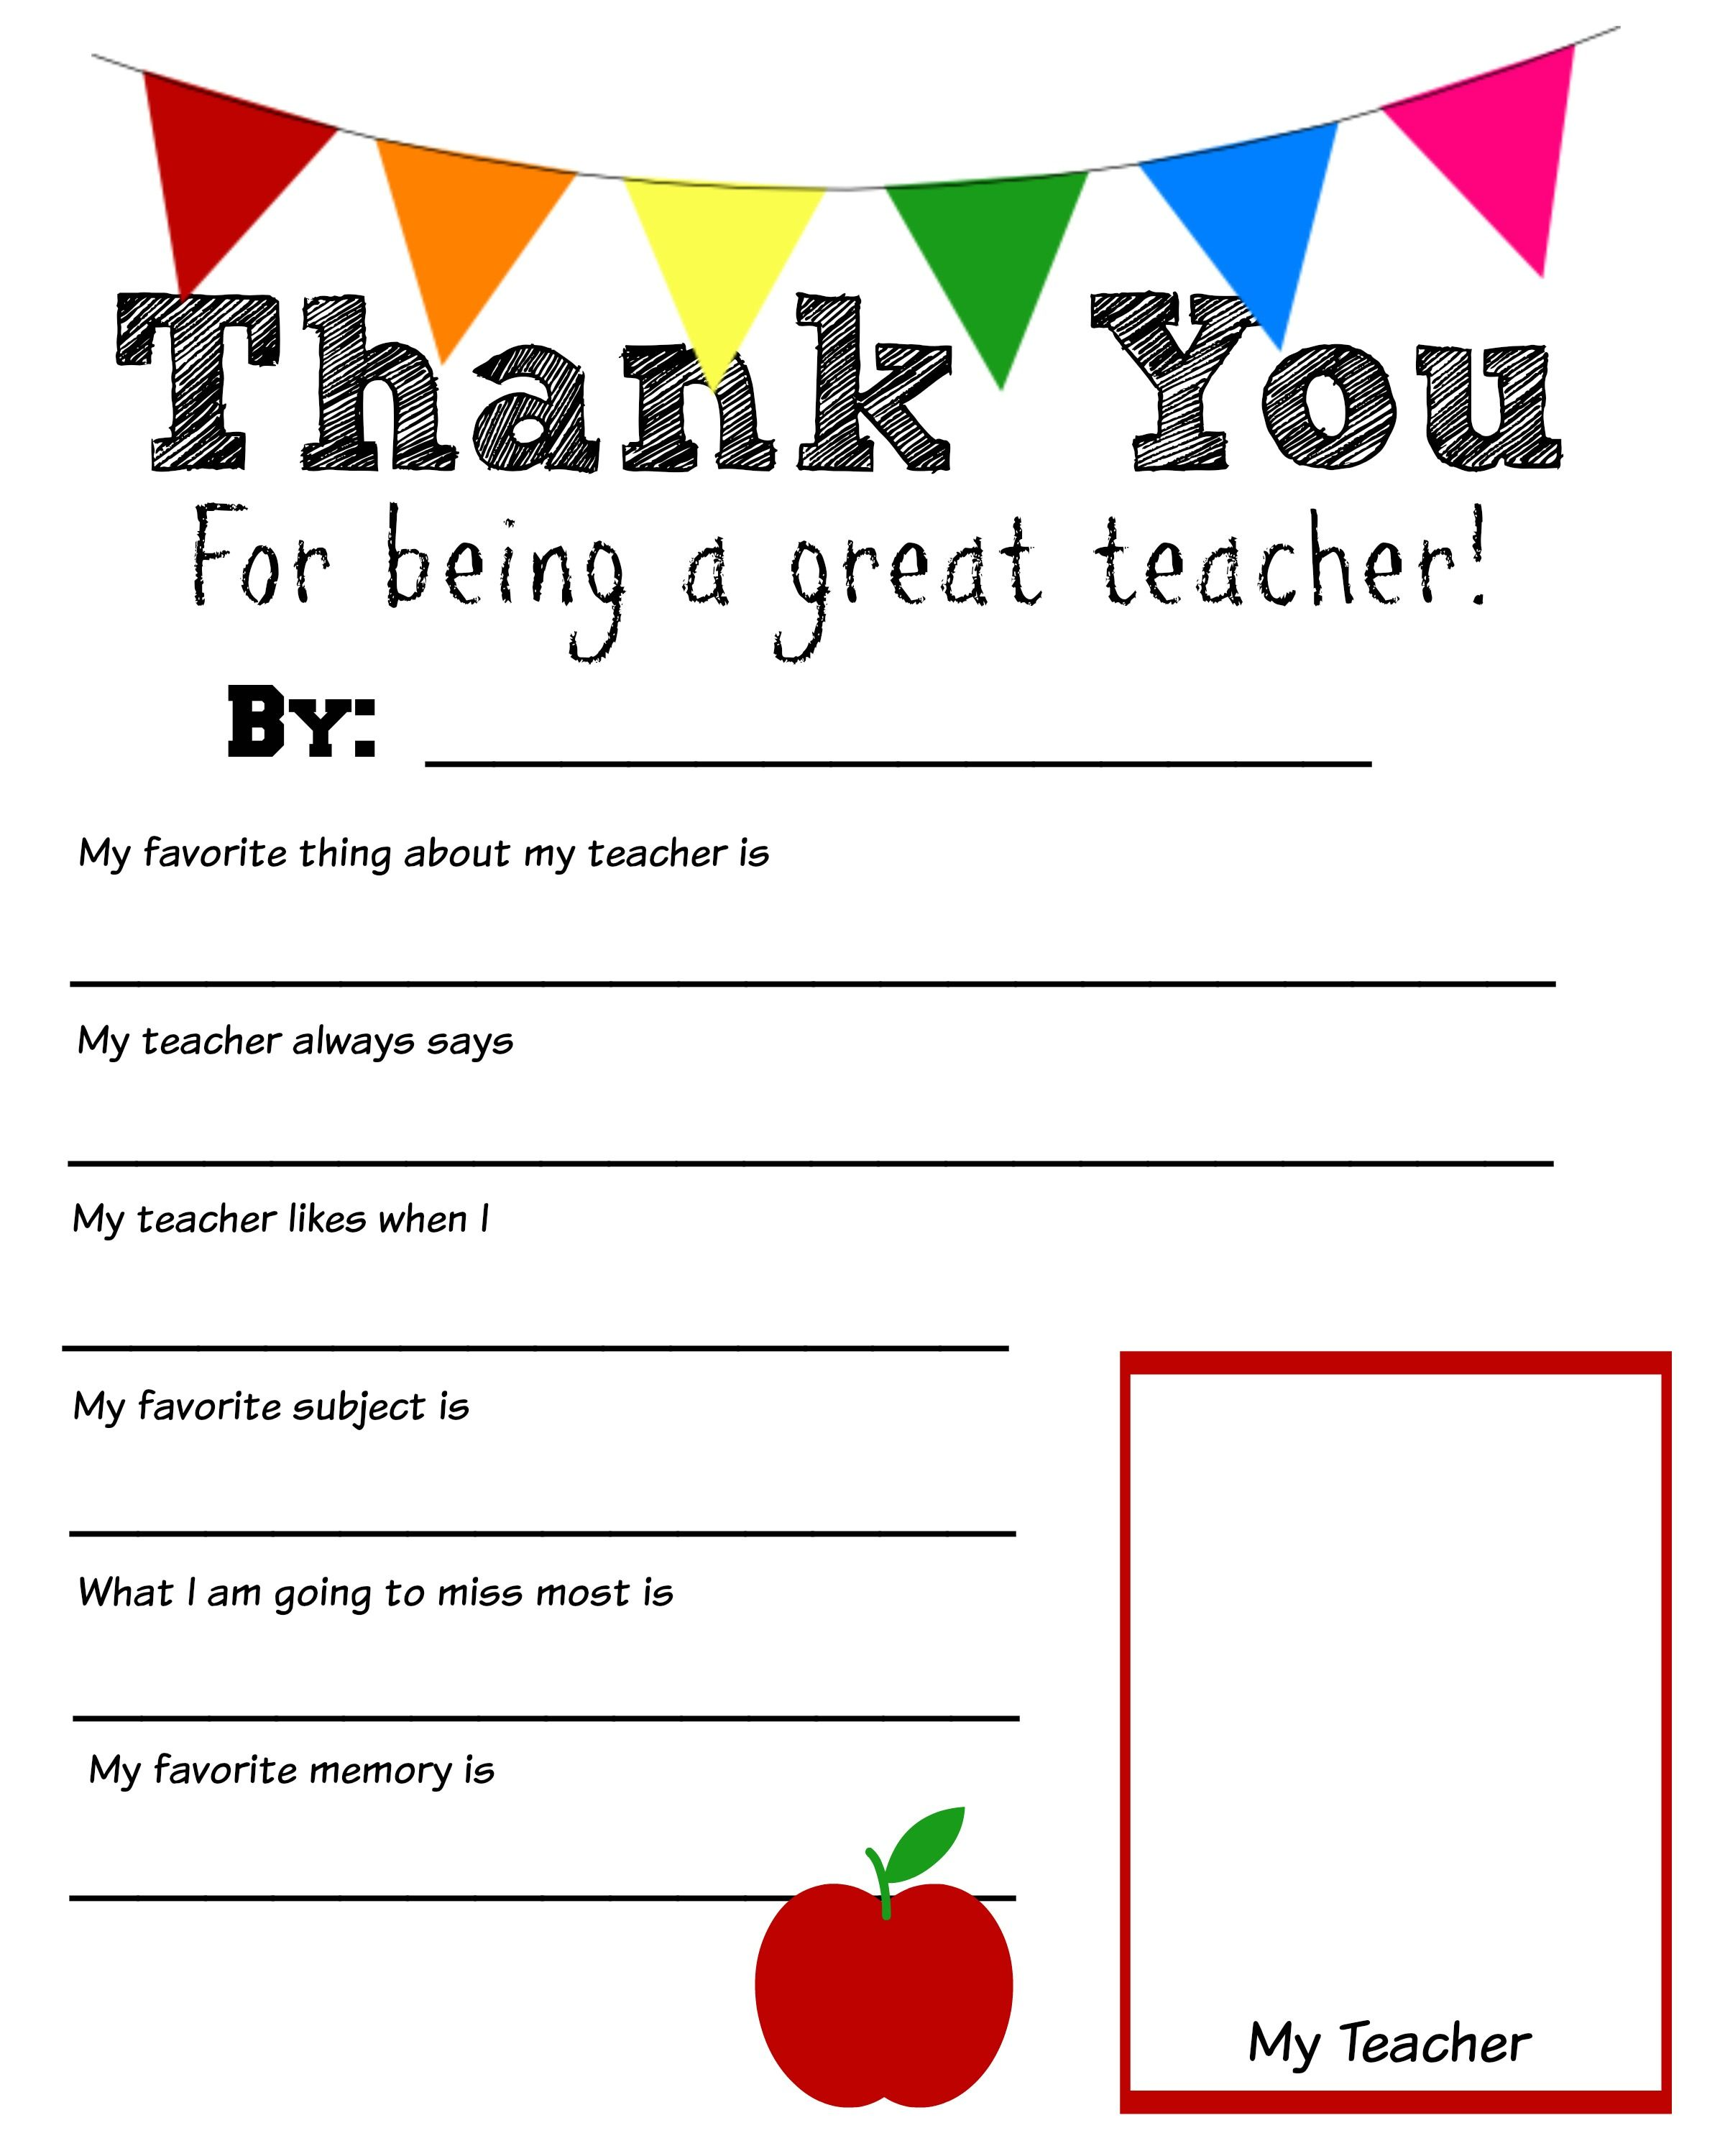 teacher appreciation student note letter to teacher proyectos escolares actividades regalos para profesores